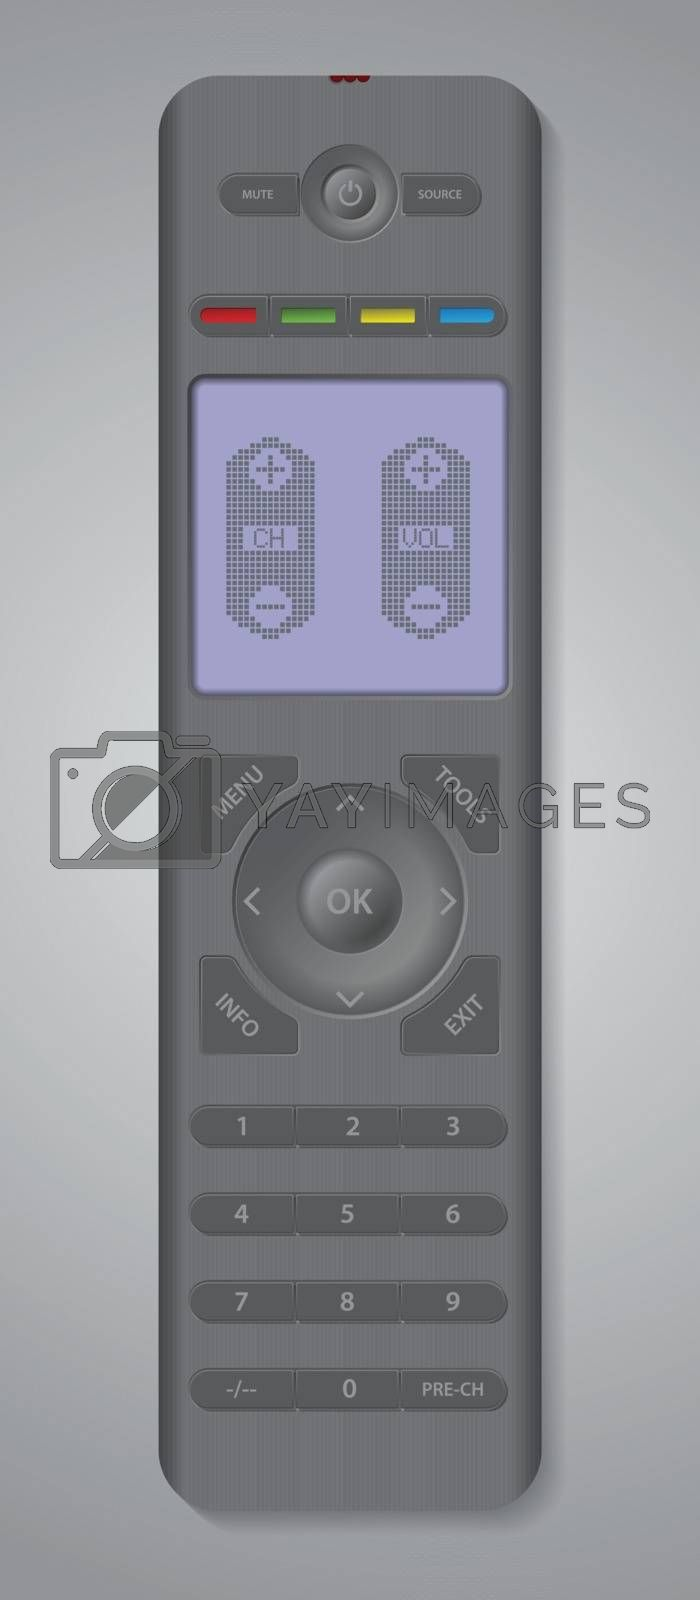 Tv remote control design with digital touch display